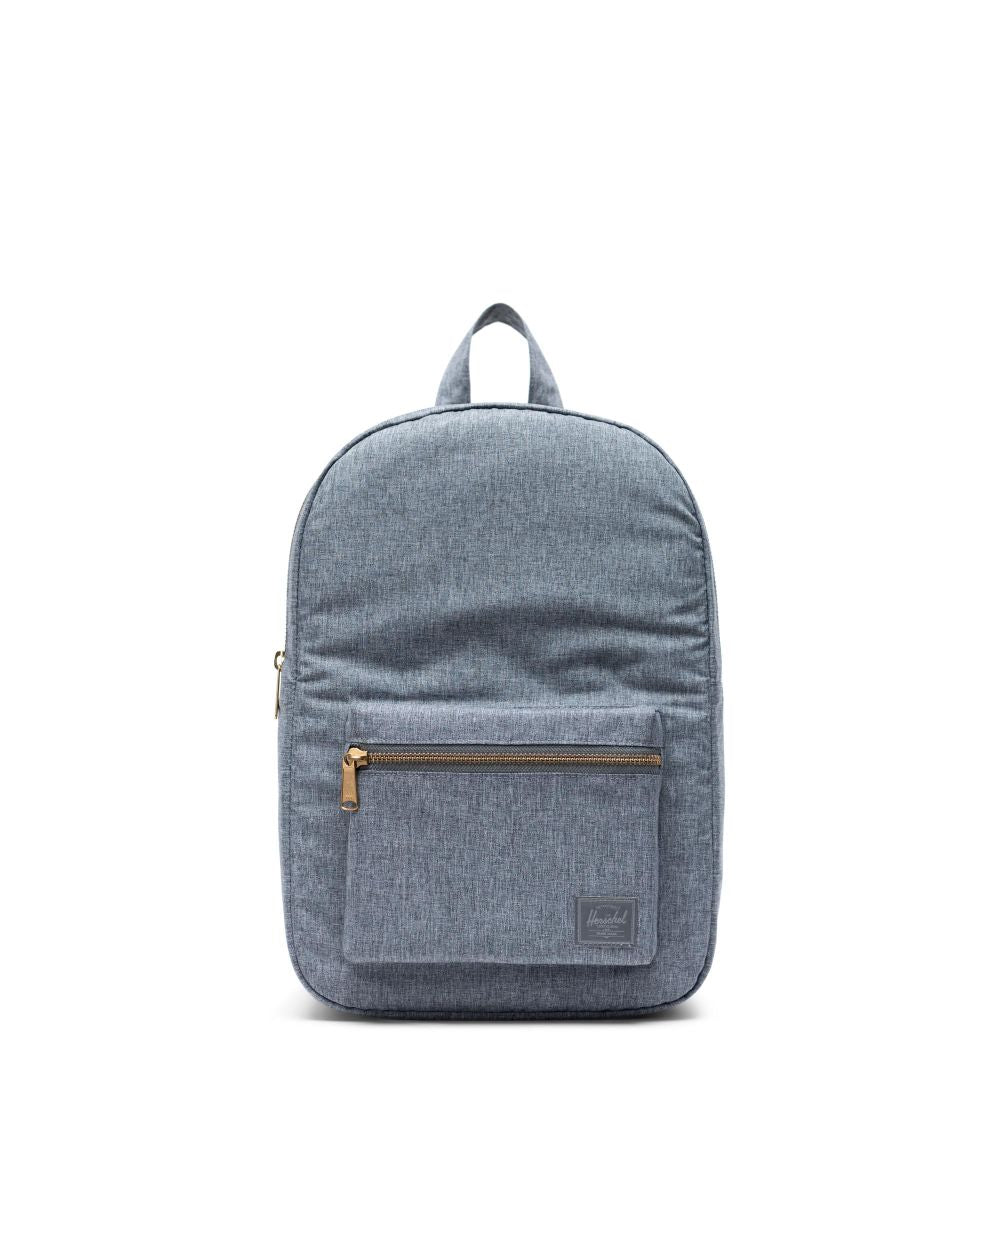 Settlement Backpack Mid-Volume Light x Raven